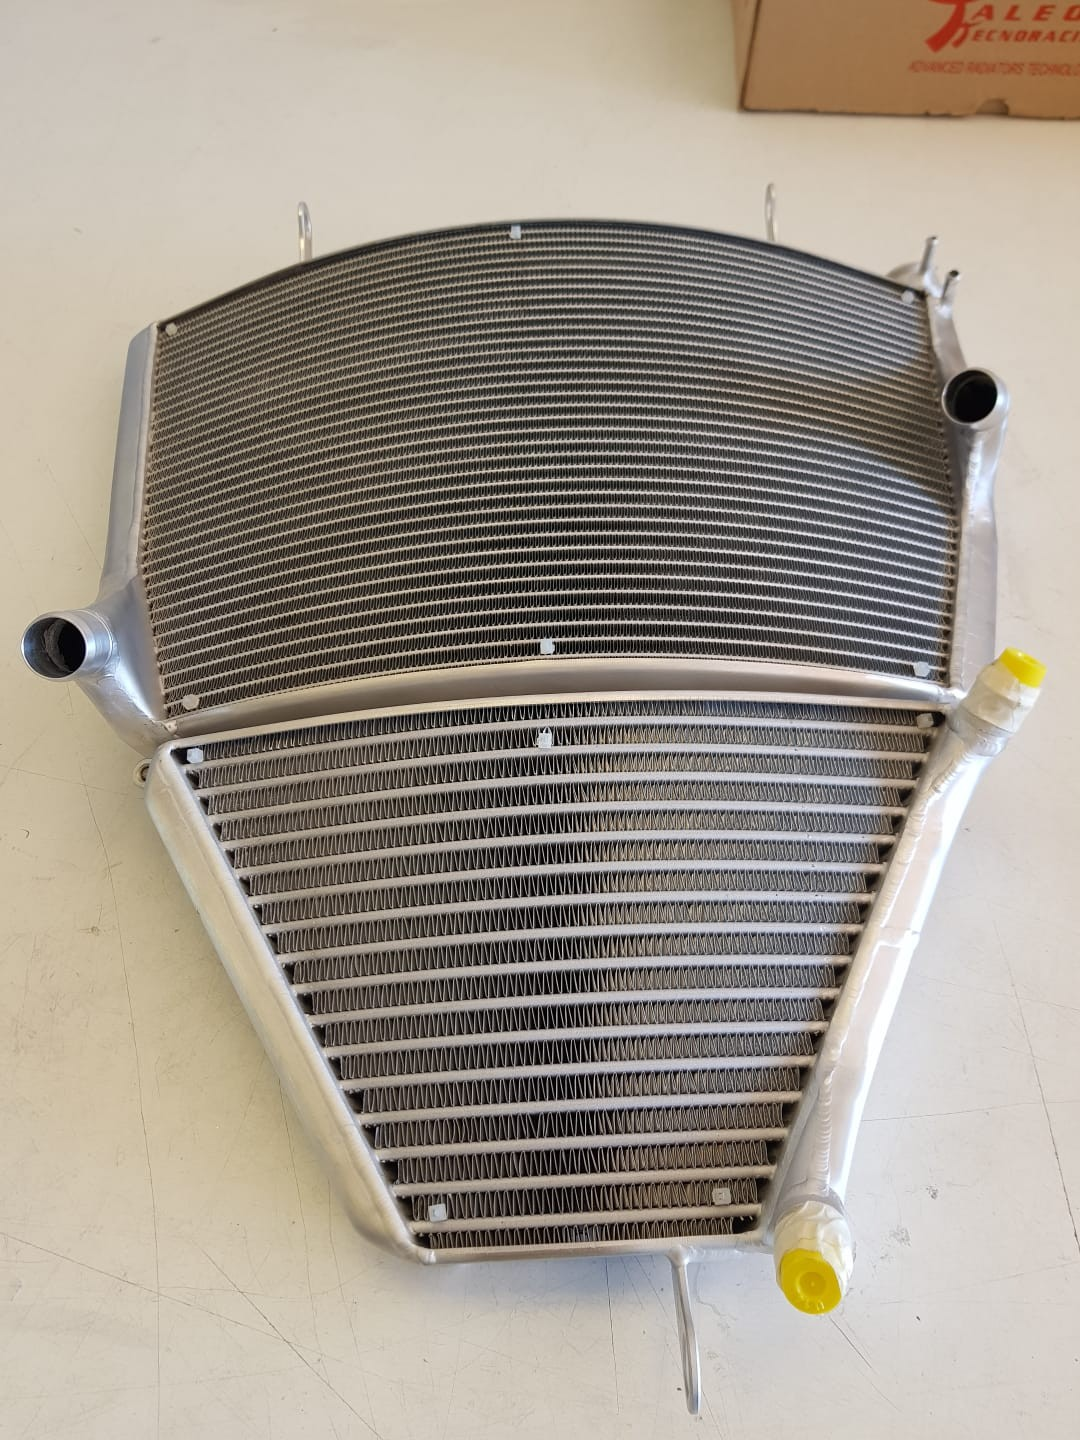 Taleo Tecnoracing Superbike Radiator Kit - 2017+ CBR1000RR Superbike Water & Oil Radiator Kit + Oil Kit